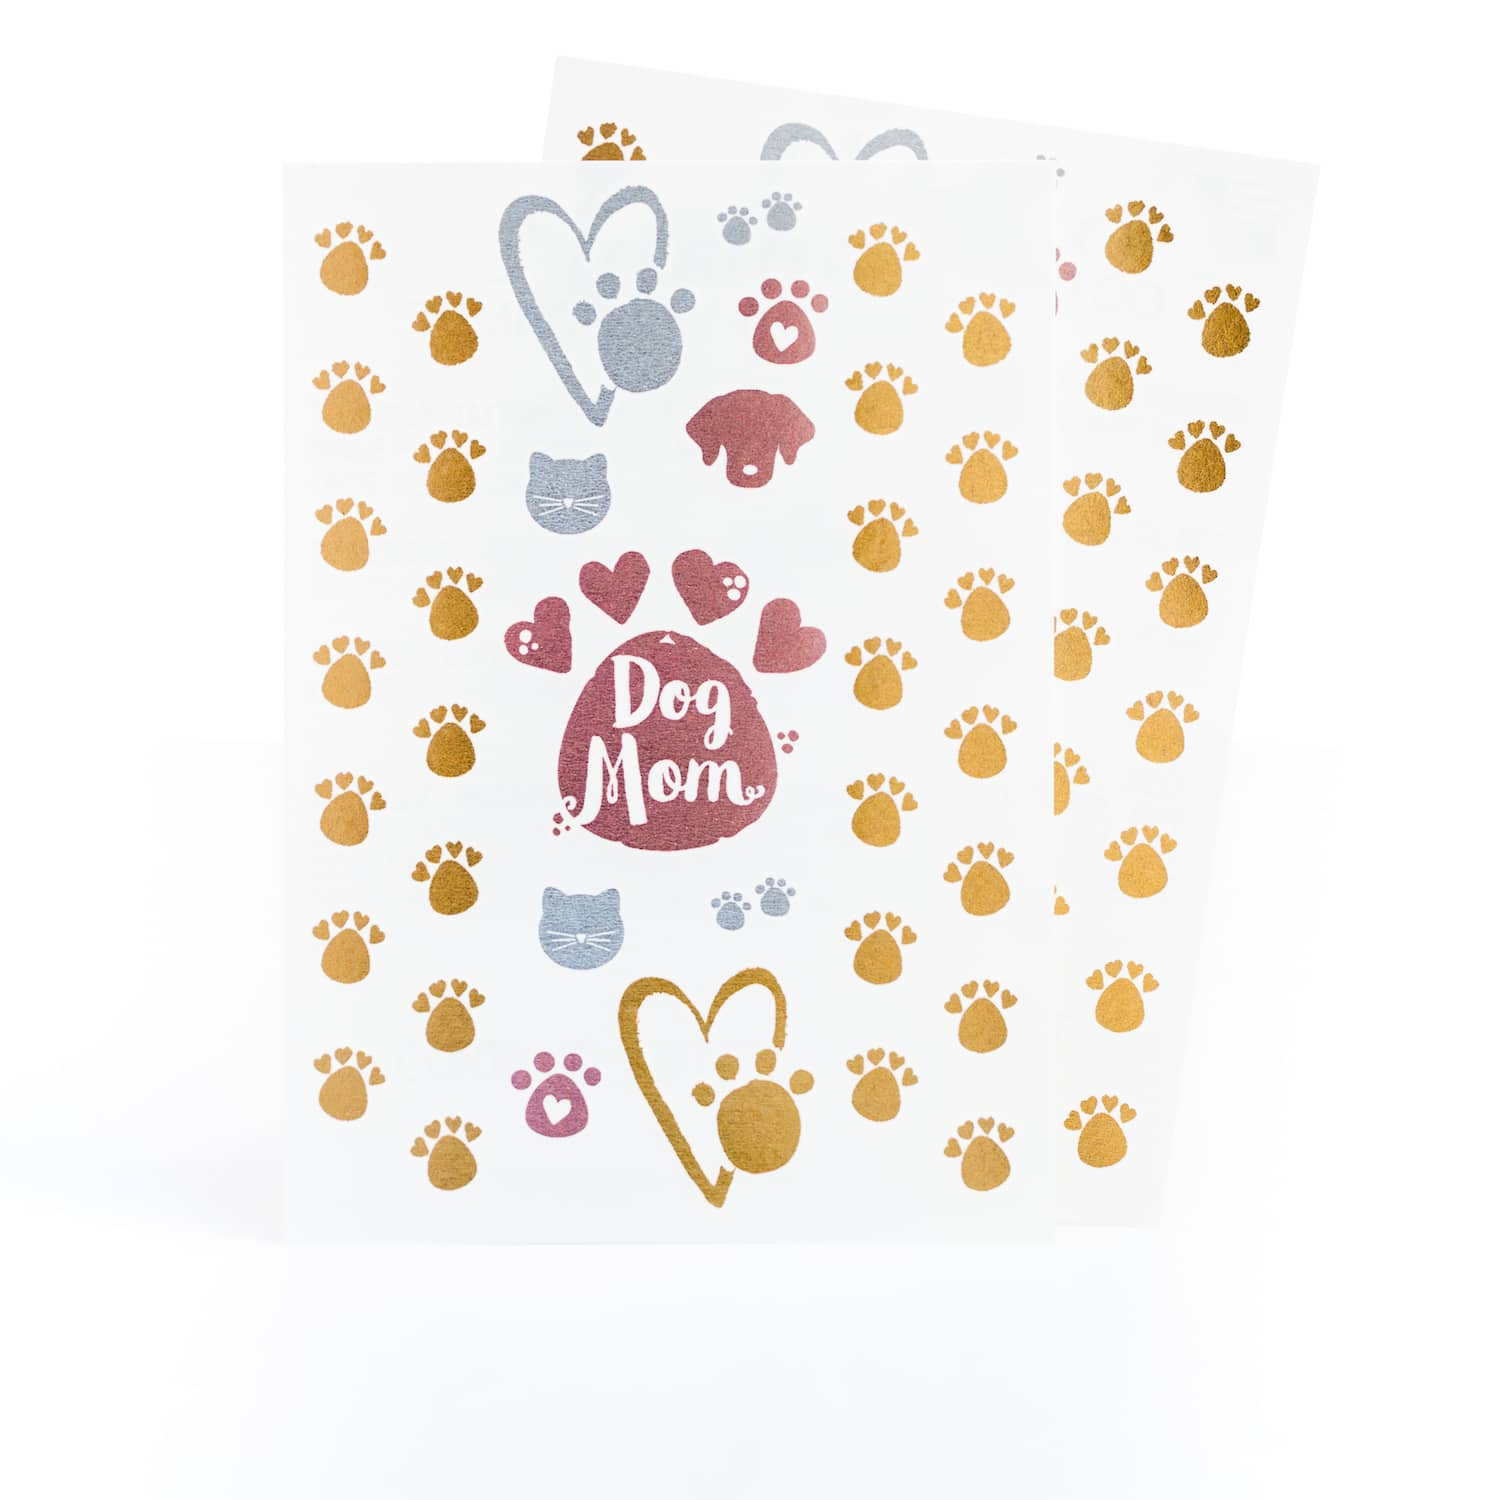 Temporary tattoos for the pet lover launched in time for holiday gifting